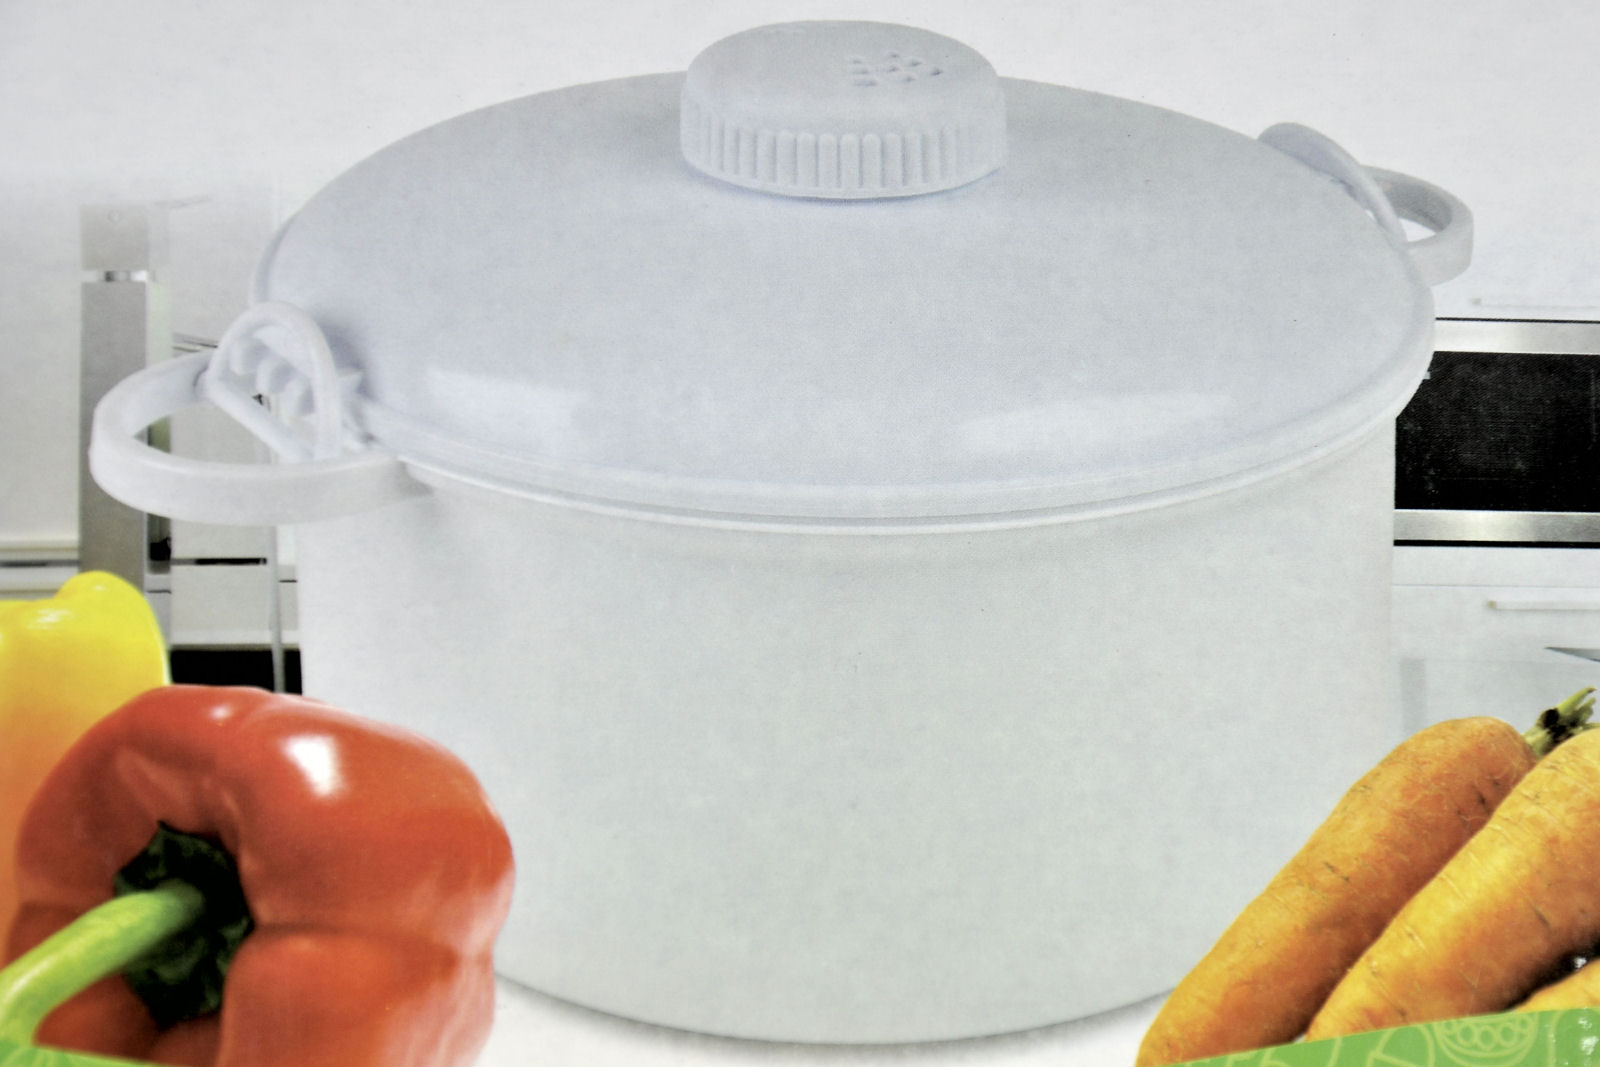 Microwave multi cooker for microwave ovens.